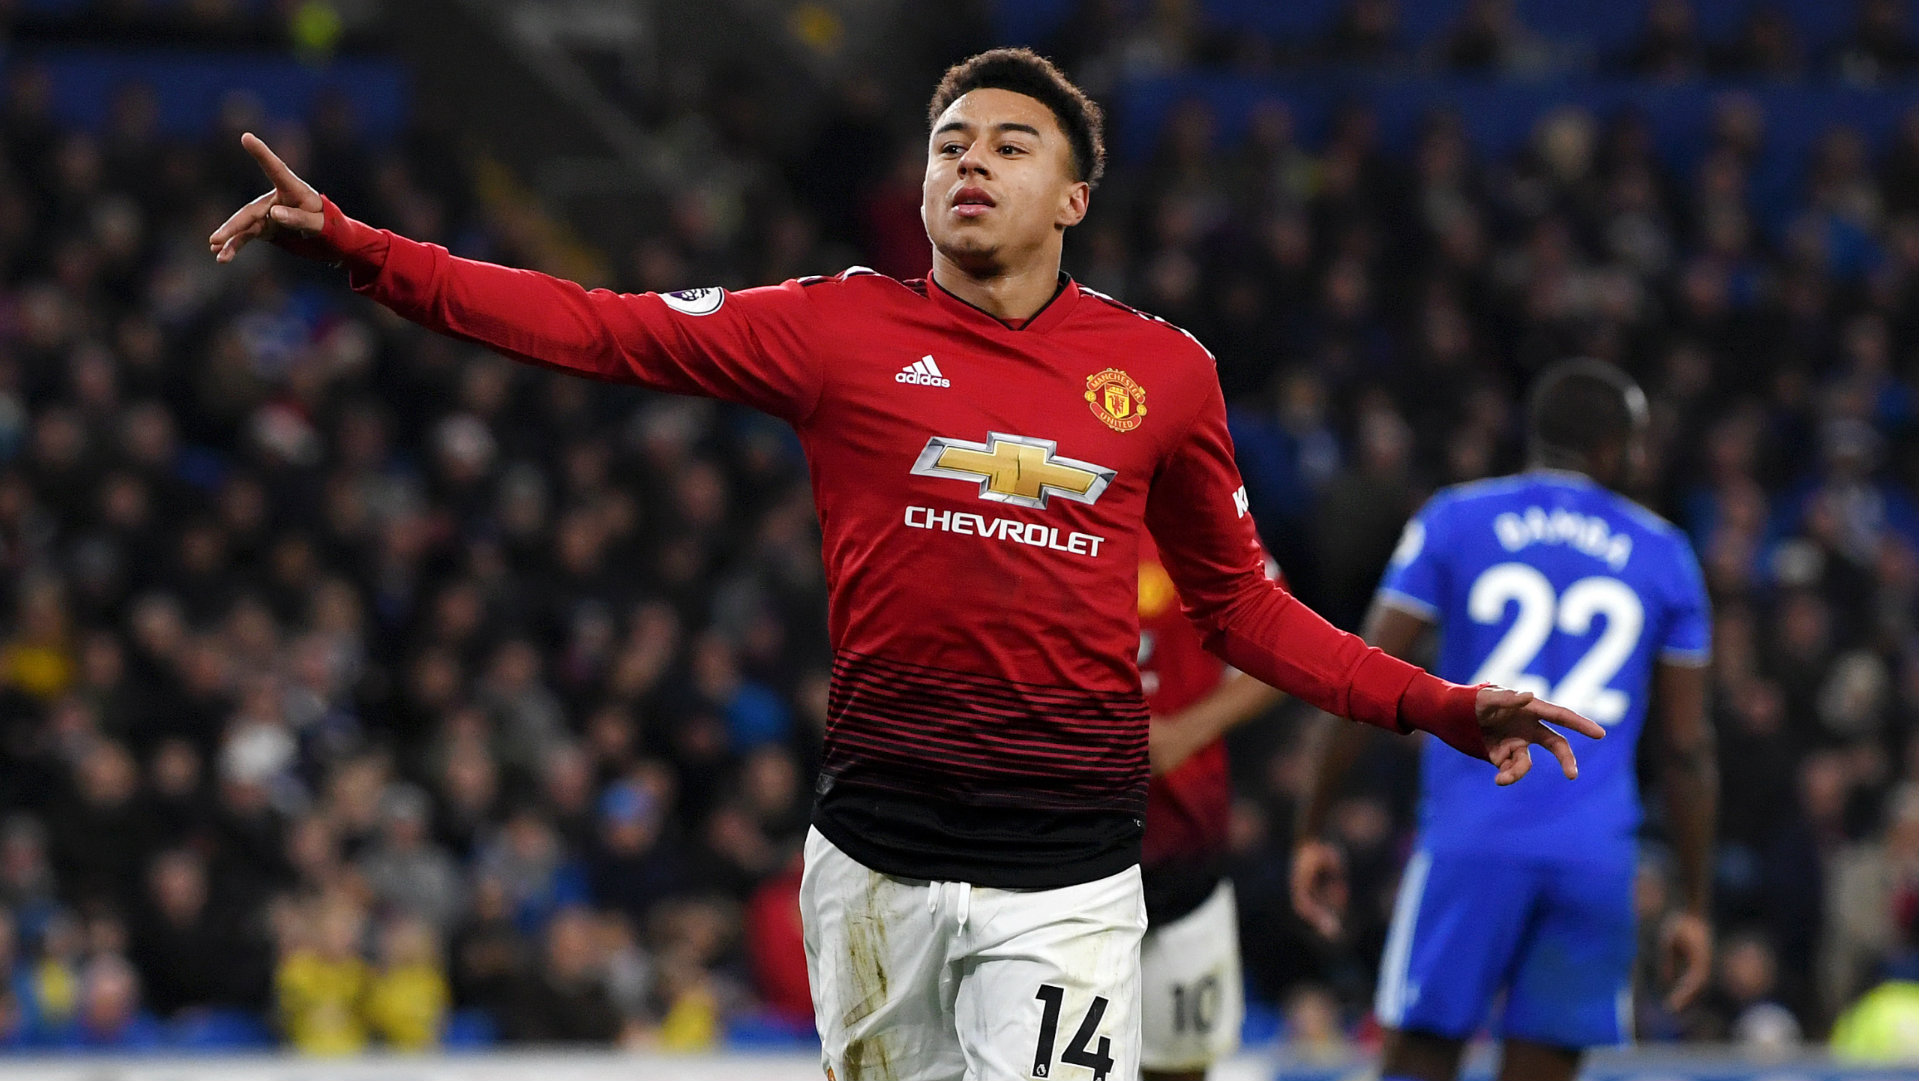 Jesse Lingard Cardiff vs Manchester United Premier League 2018-19